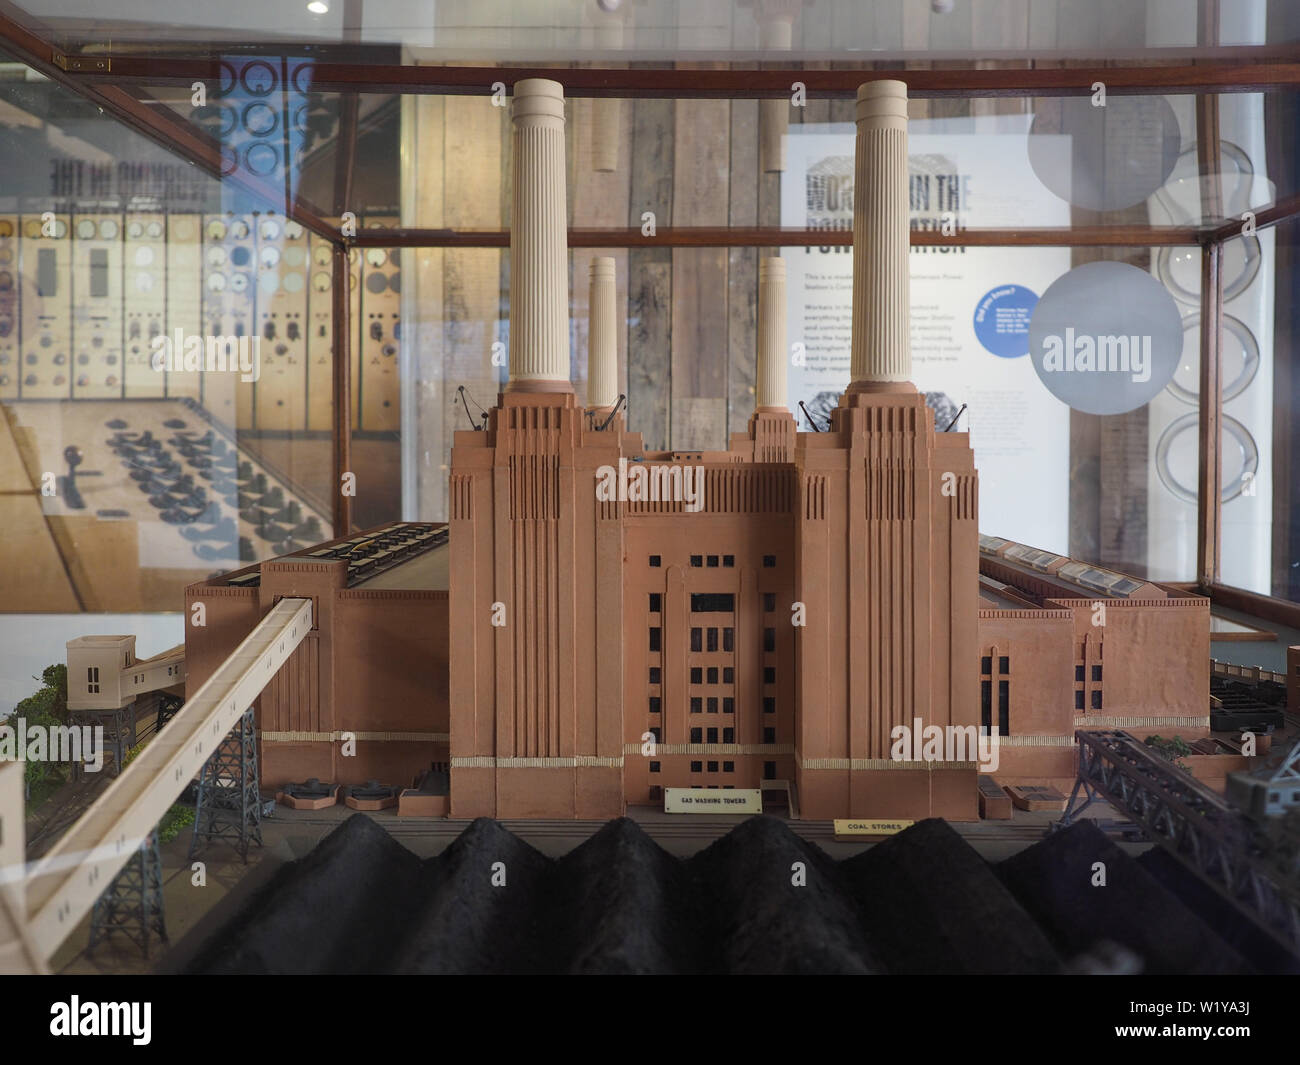 LONDON, UK - CIRCA JUNE 2019: 3D model of the Battersea Power Station at Circus West free exhibition - Stock Image